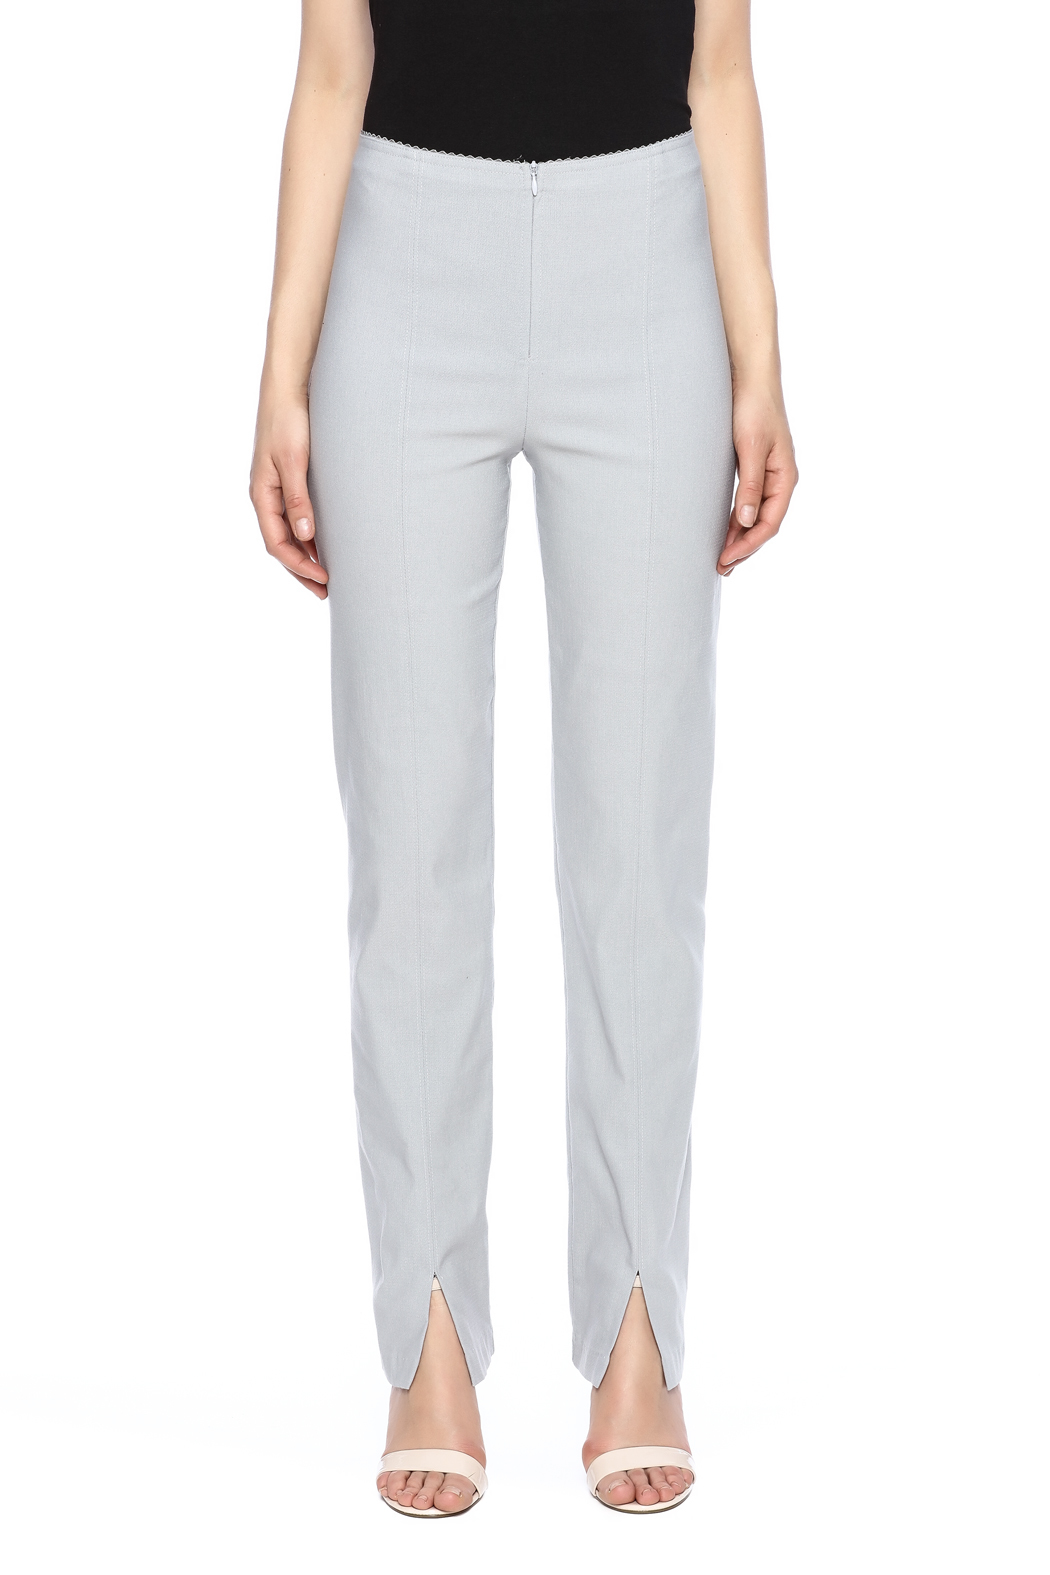 Mesmerise Tapered Leg Pant - Side Cropped Image